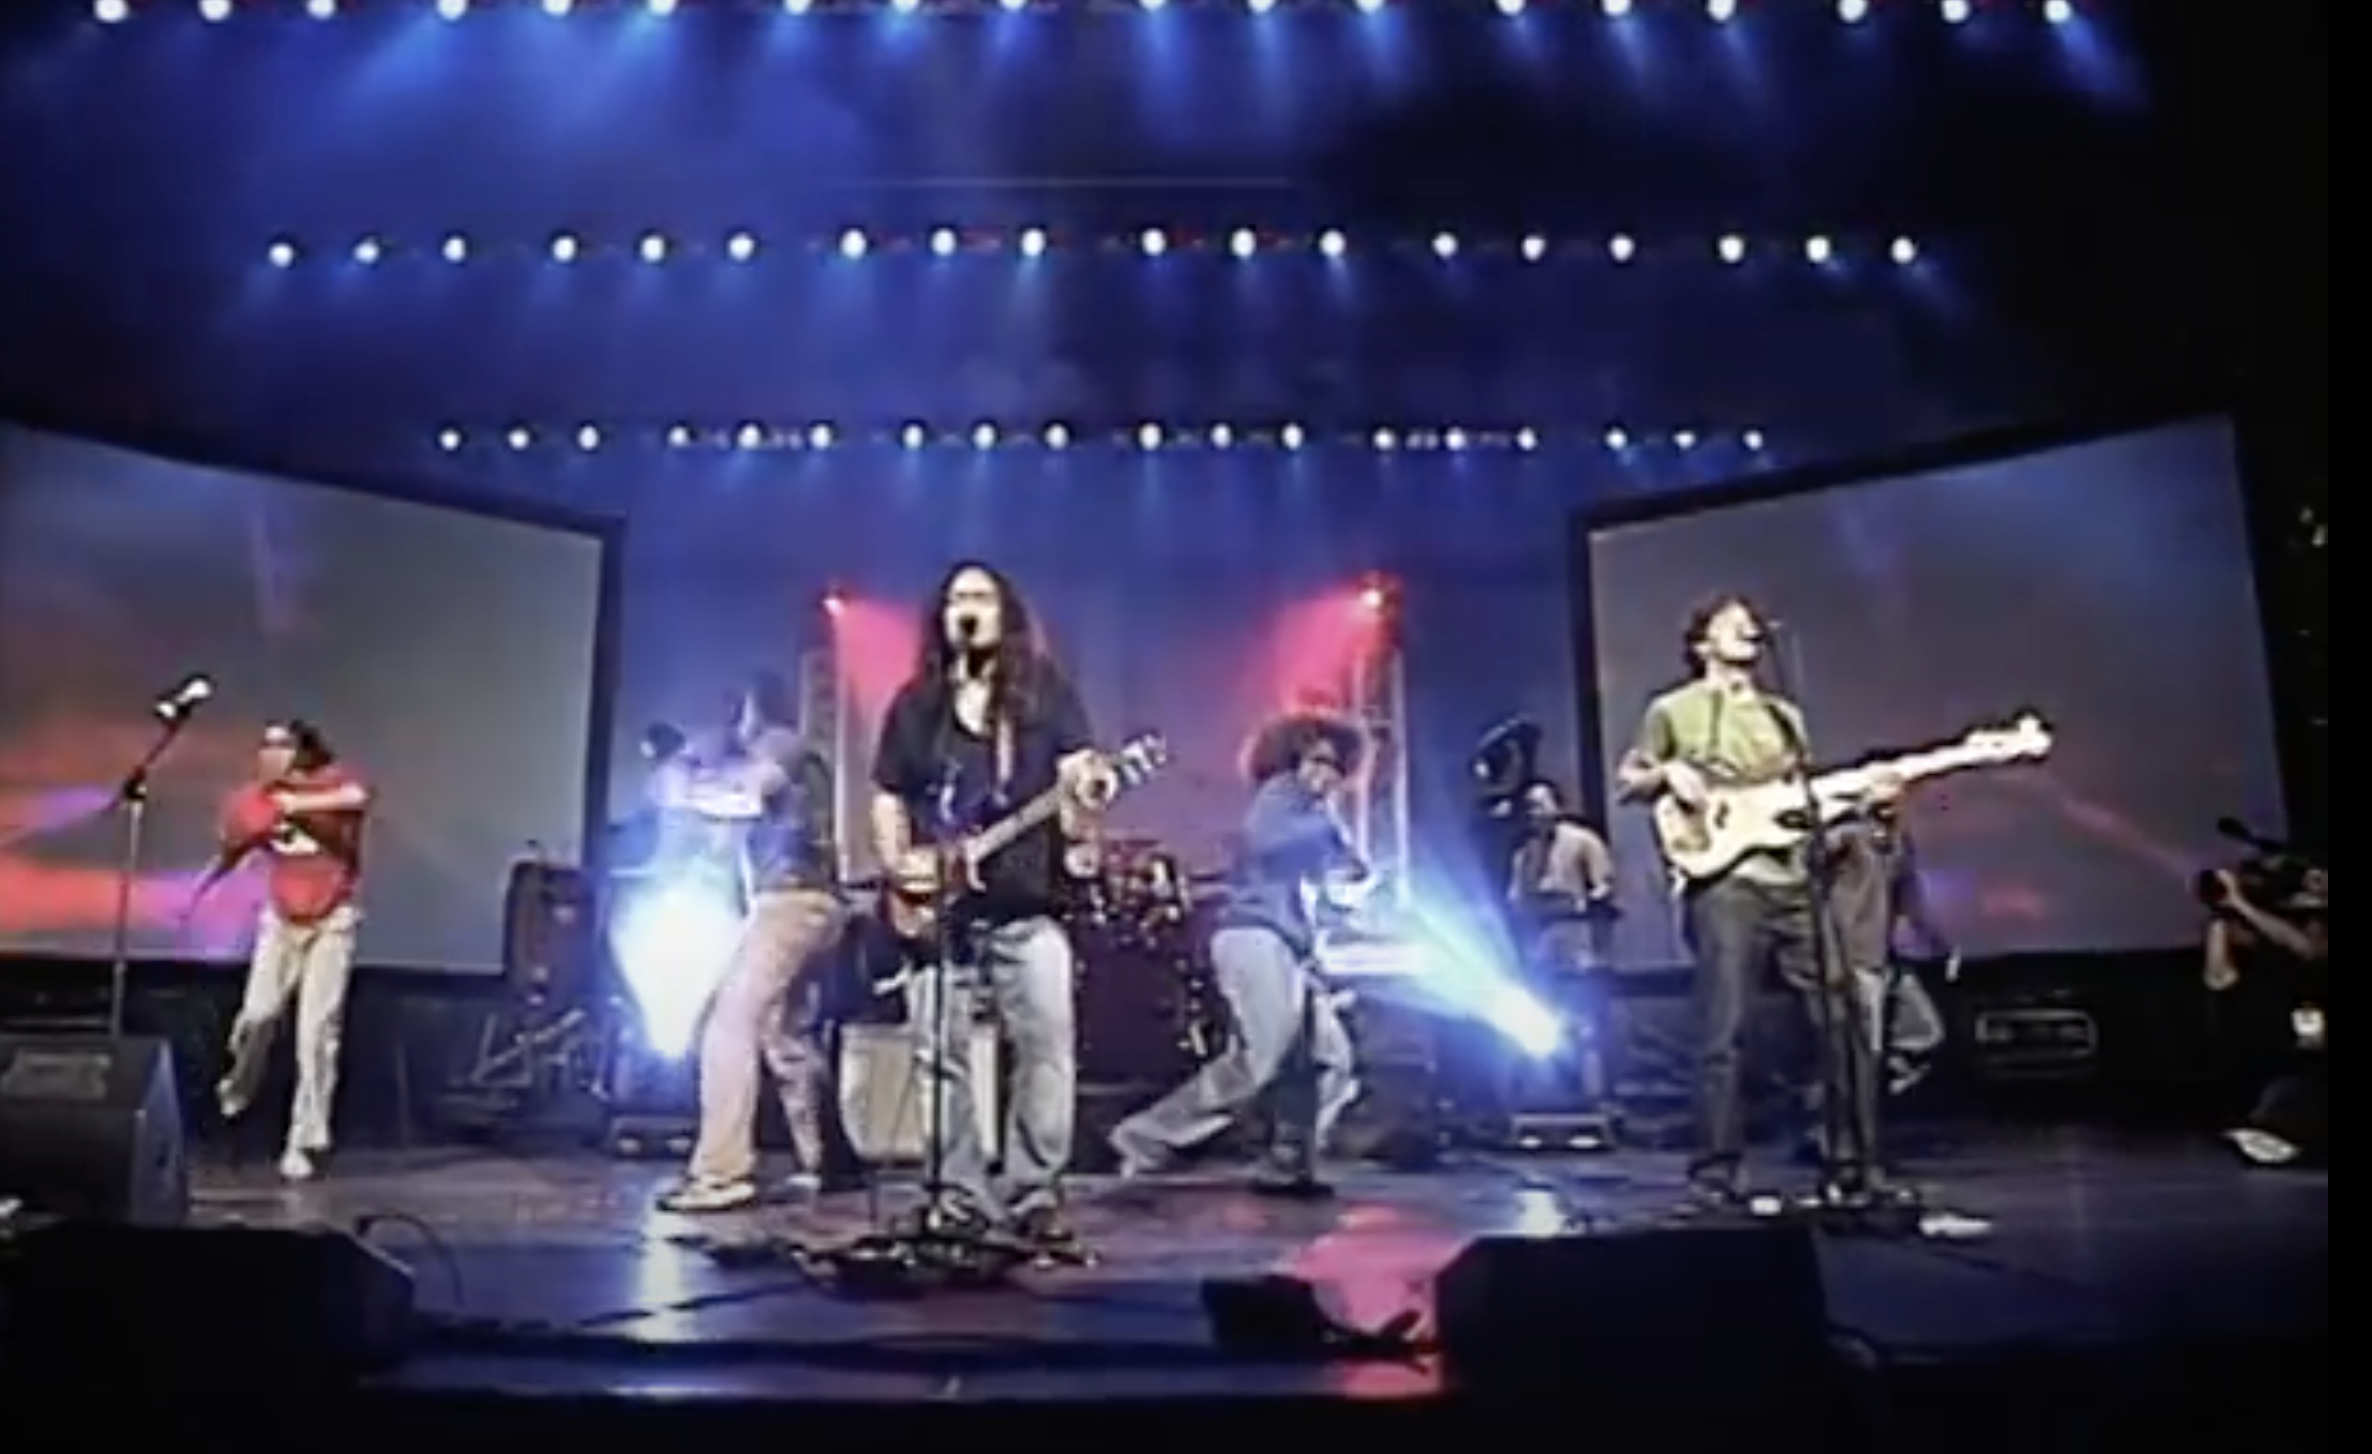 One rock artist sings and plays guitar with a band and dancers on stage